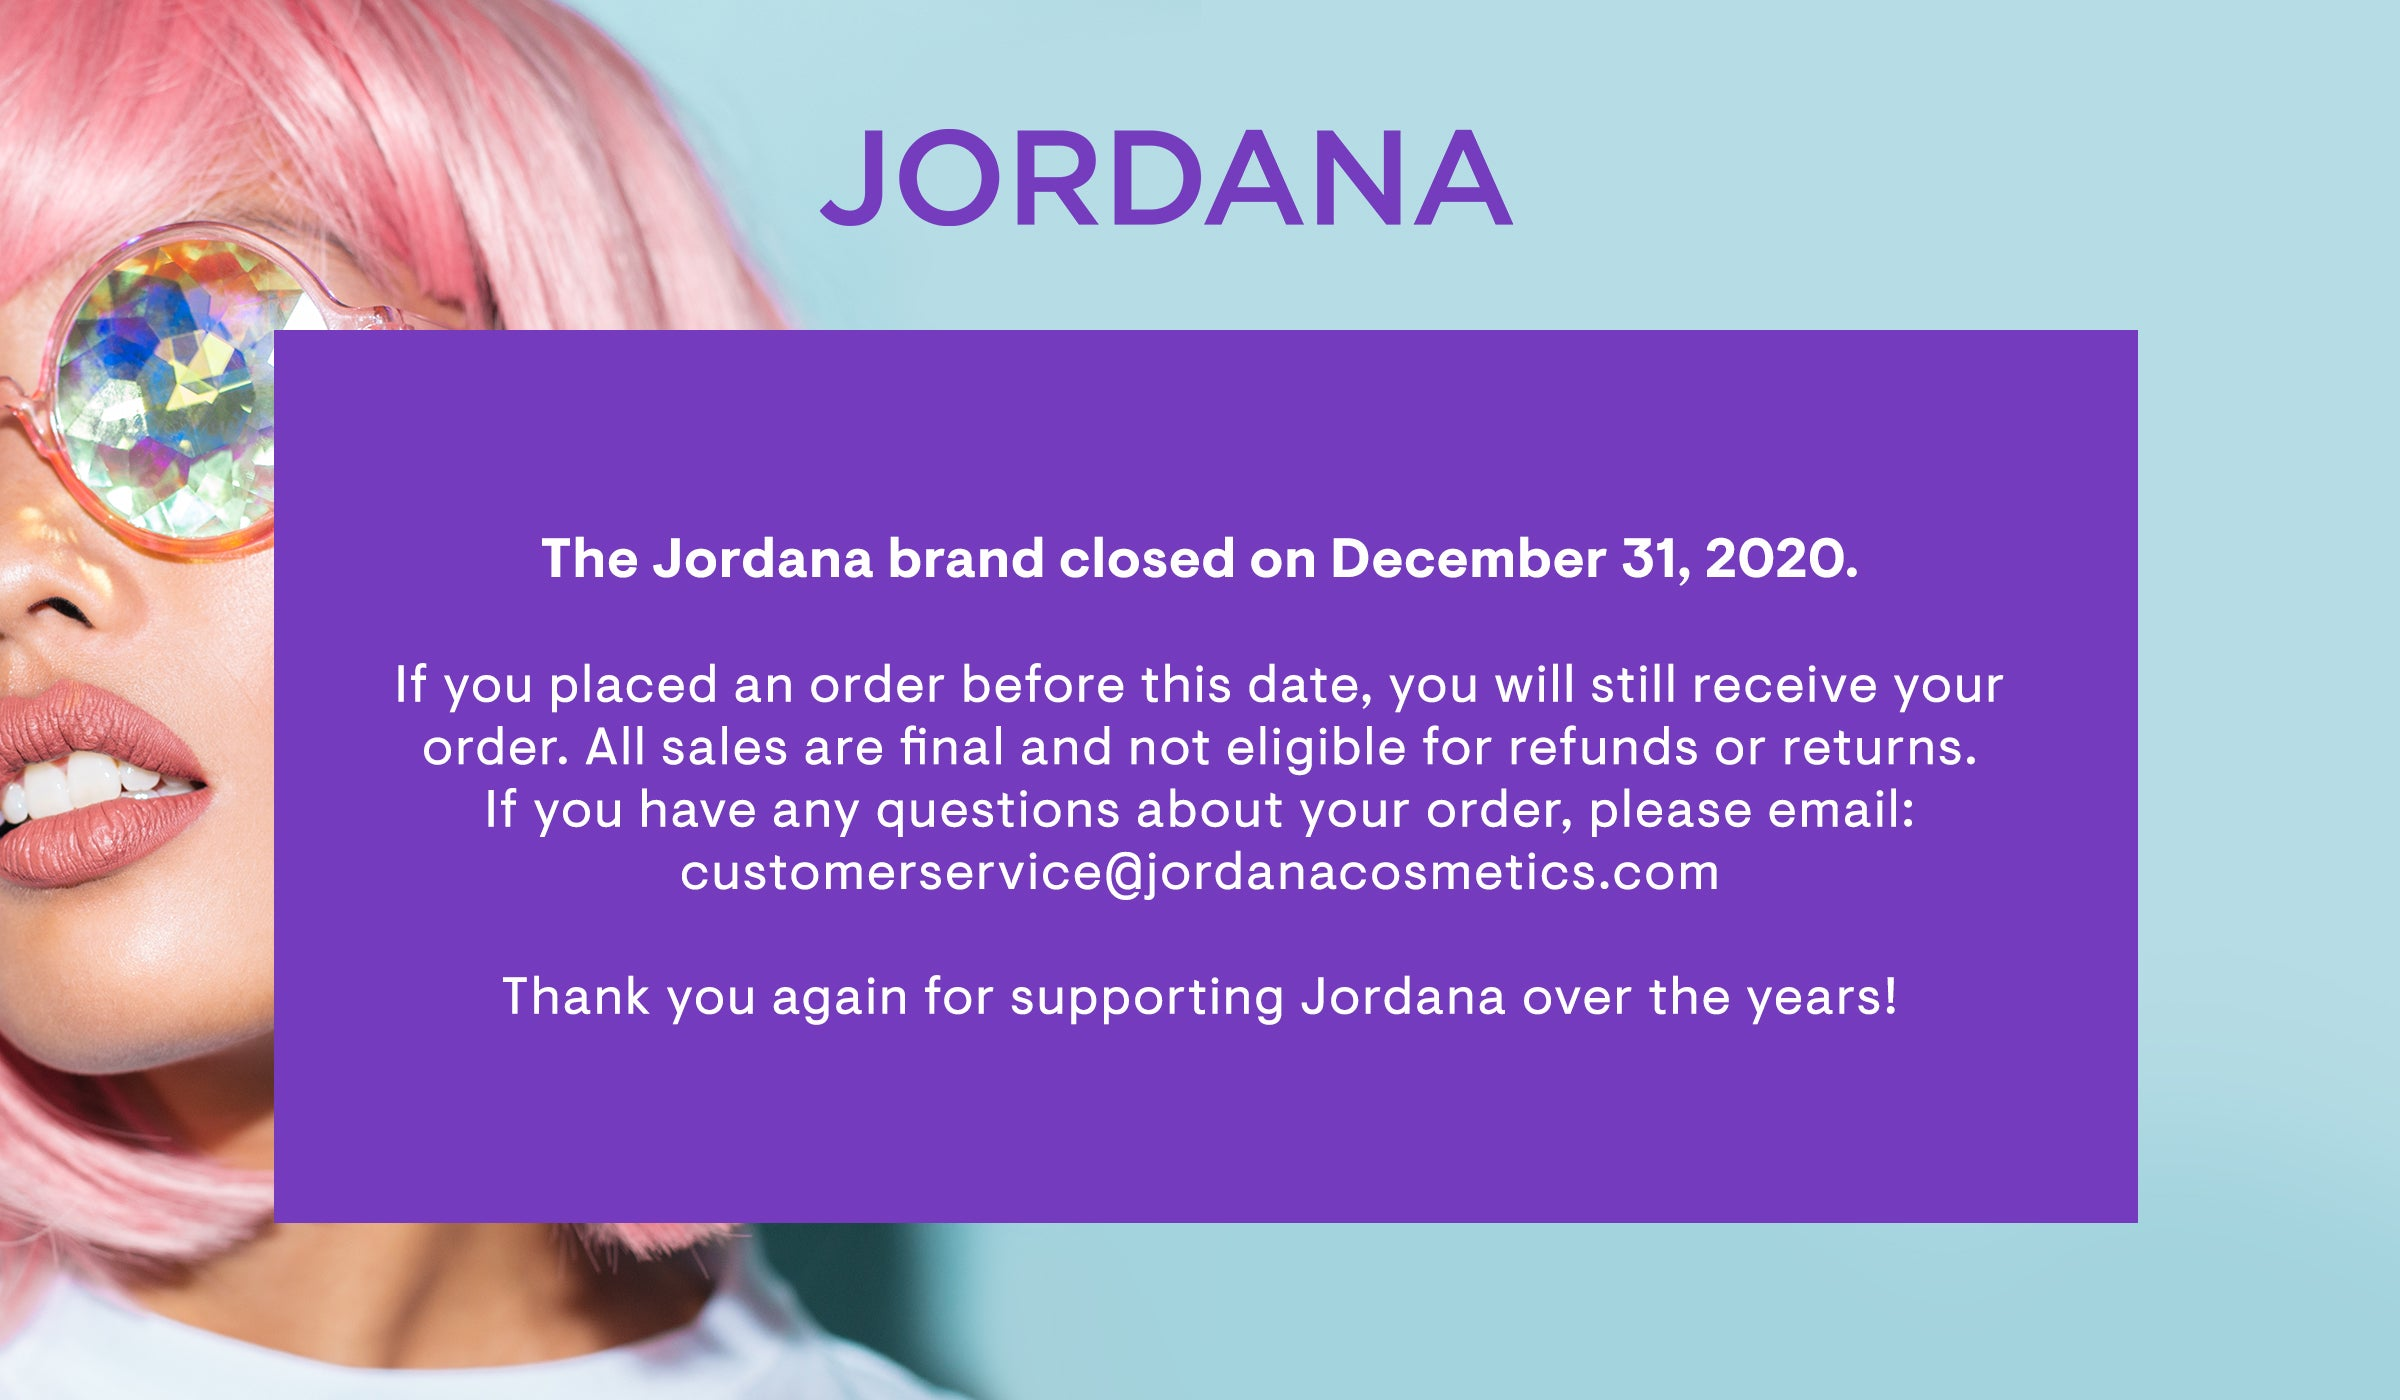 The Jordana brand closed on December 31, 2020. If you placed an order before this date, you will still receive your order. All sales are final and not eligble for refunds or returns. If you have any questions, please click this image to email support. Thank you again for supporting Jordana over the years!